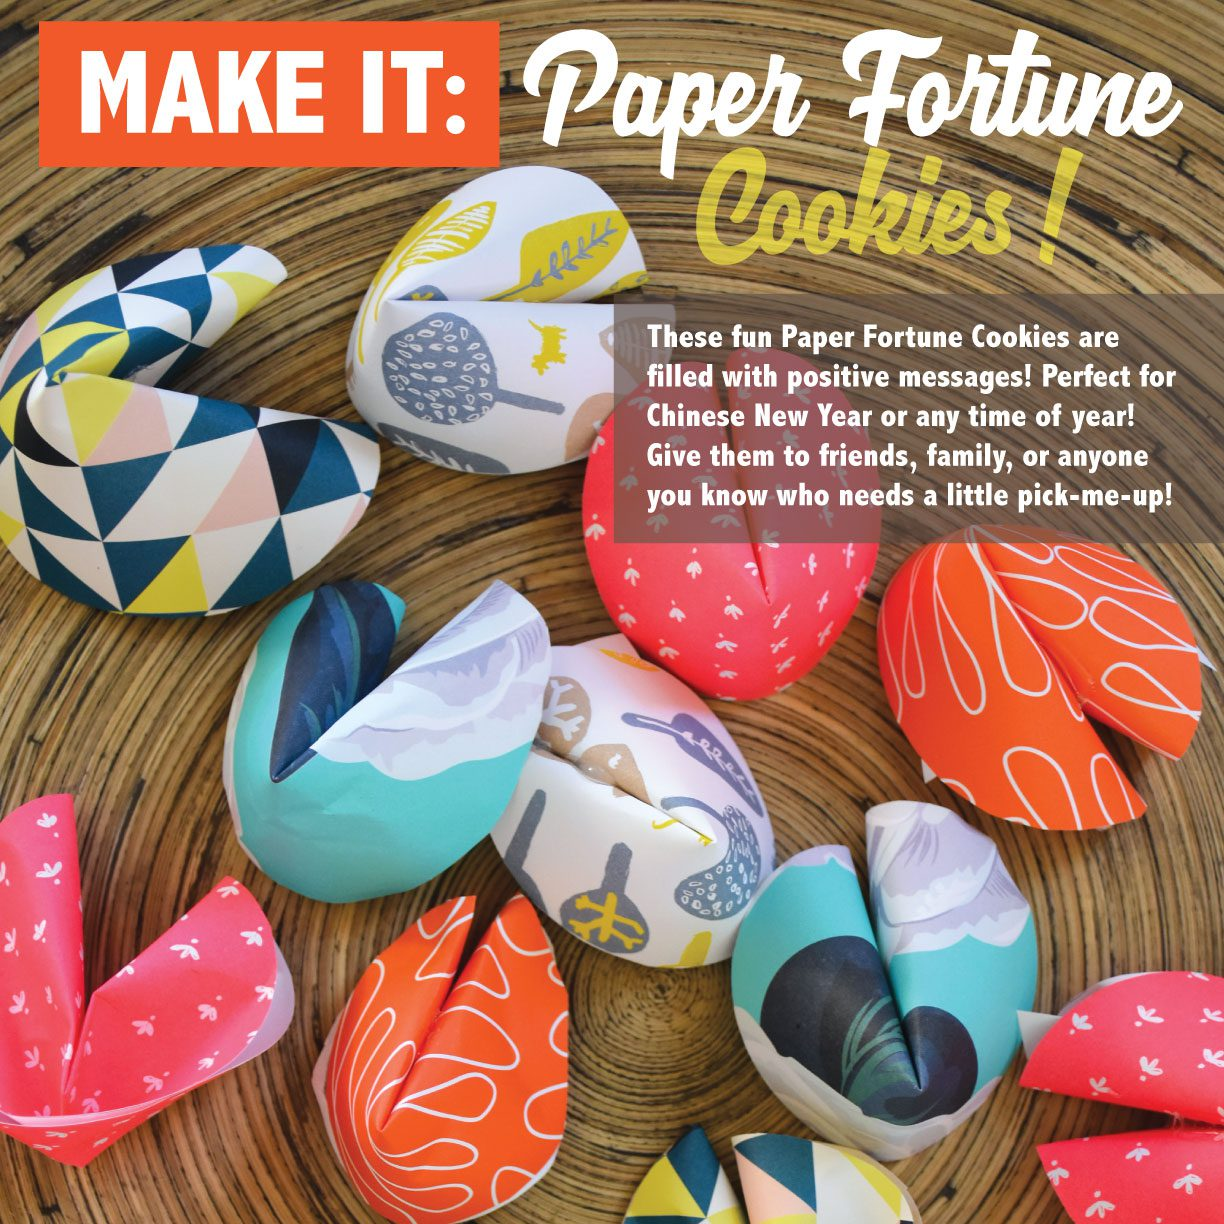 Learn how to make paper fortune cookies!